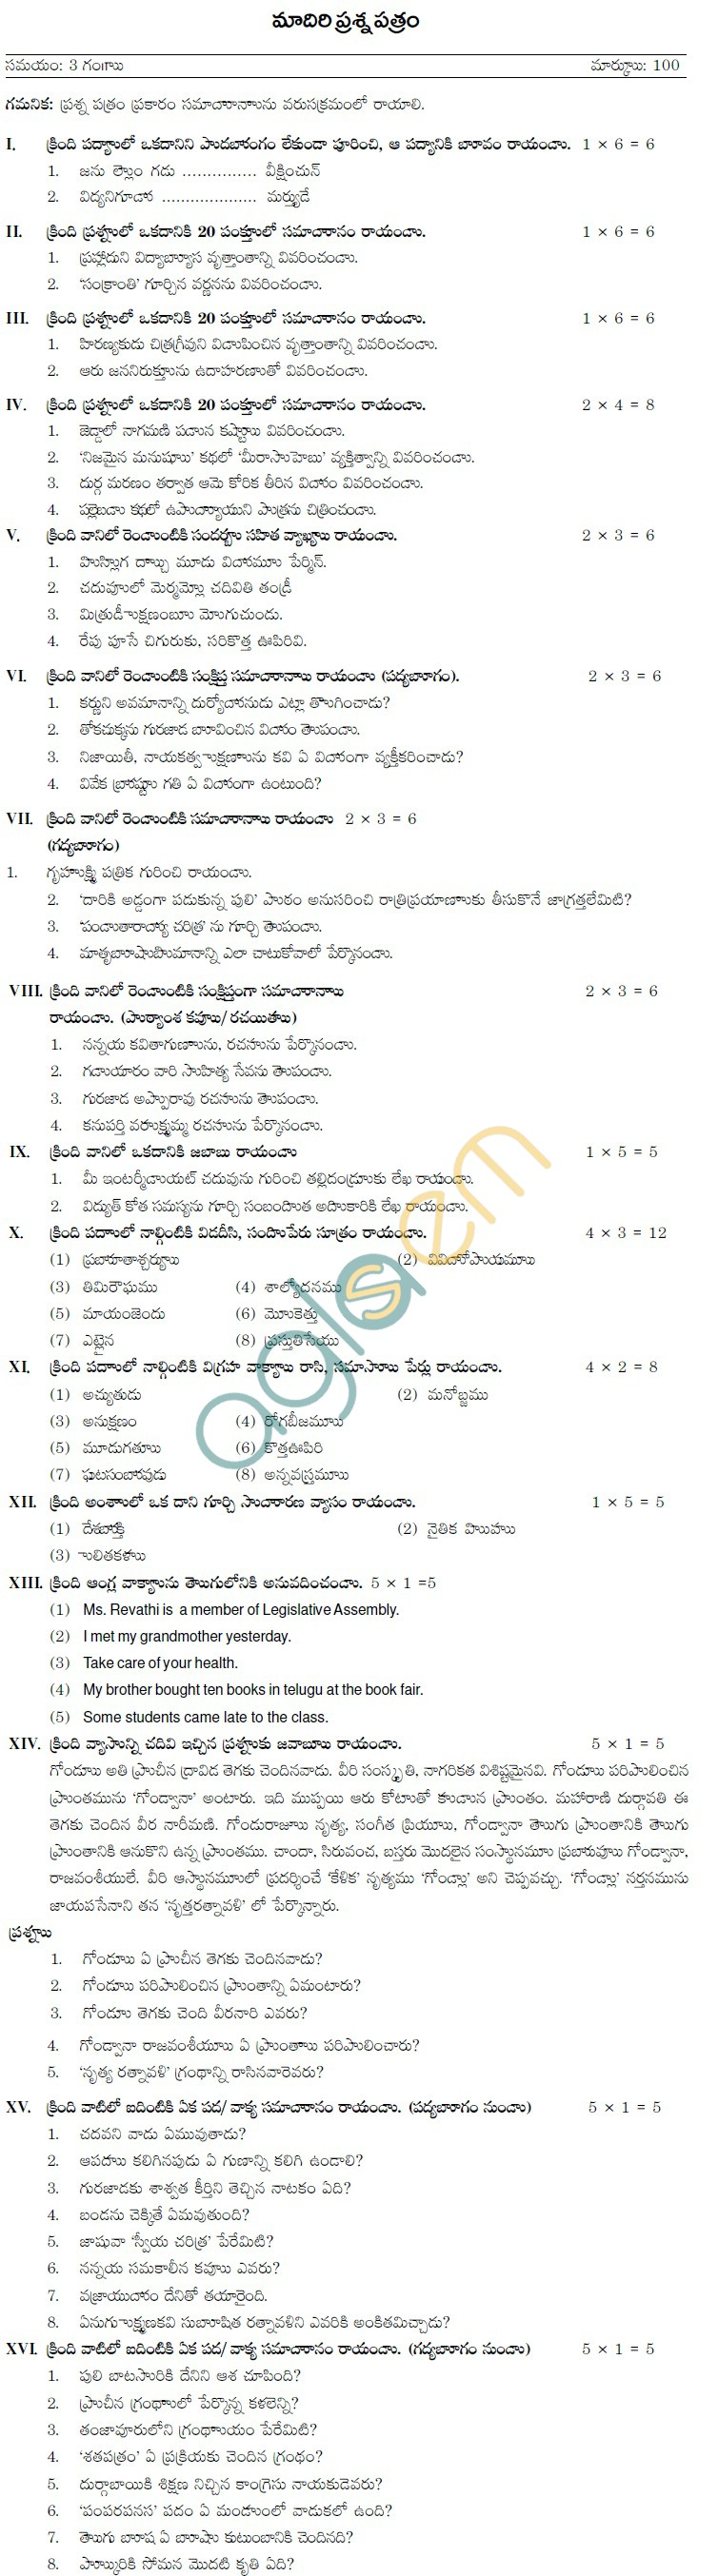 AP Board Intermediate I Year Telugu Model Question Paper